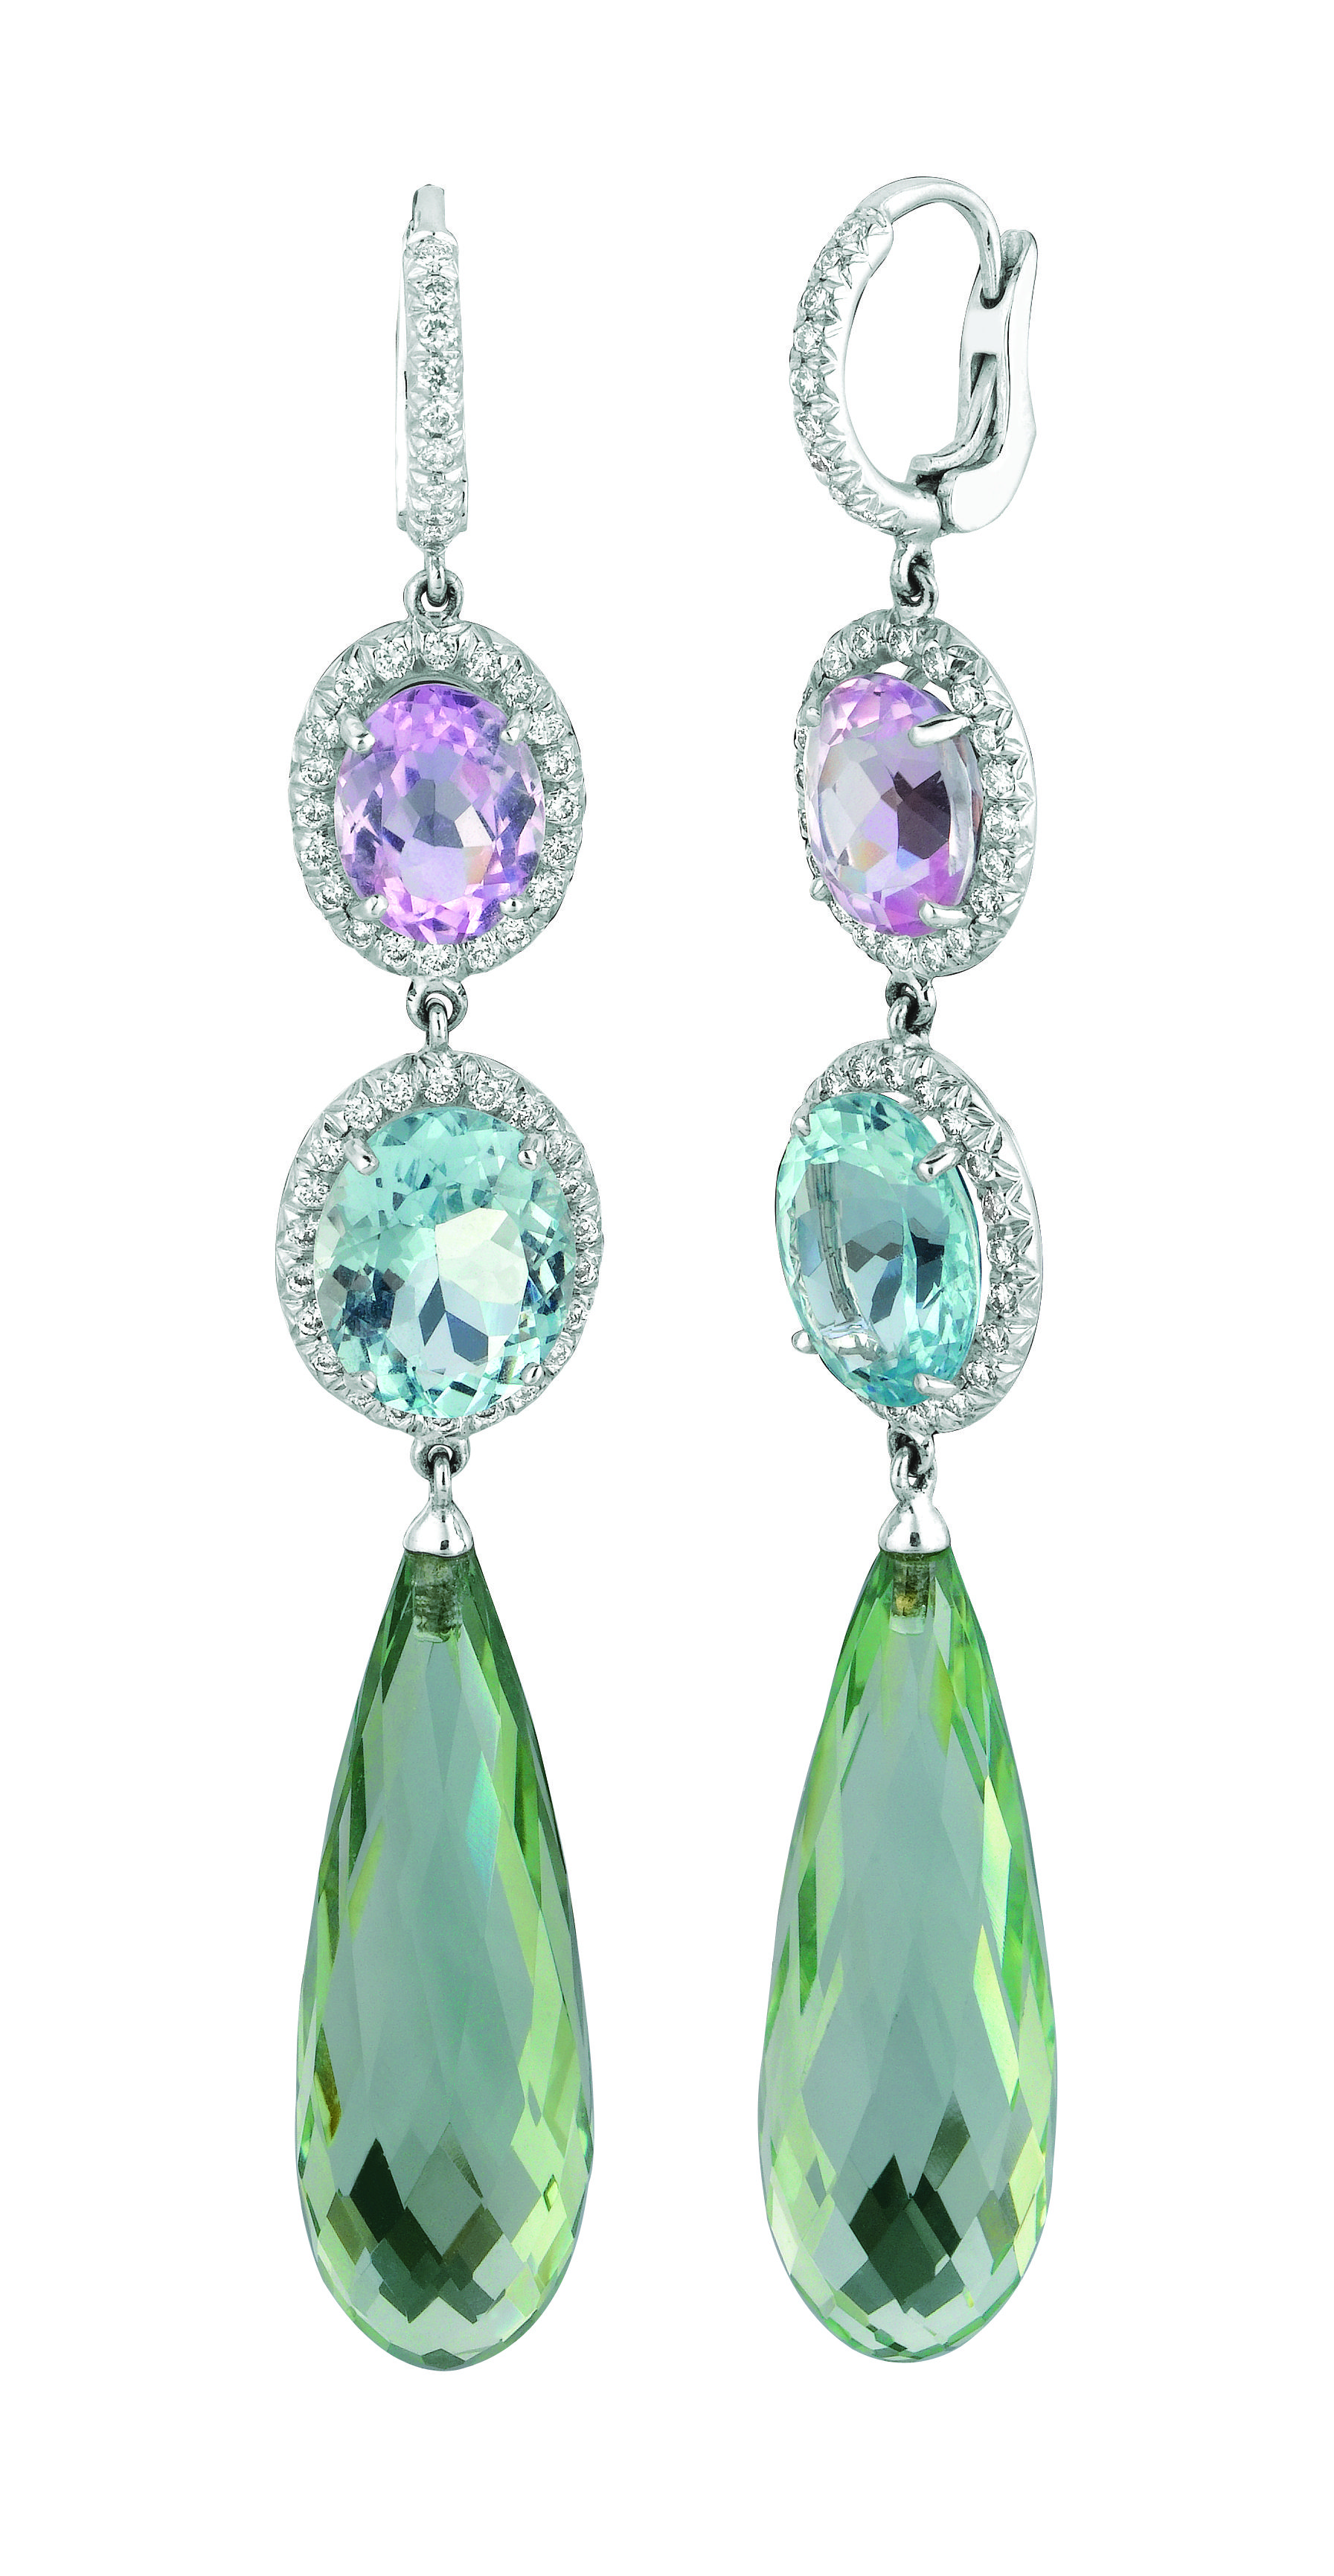 kunzite of each pair pin and a line cut earrings diamond pendent as brilliant designed